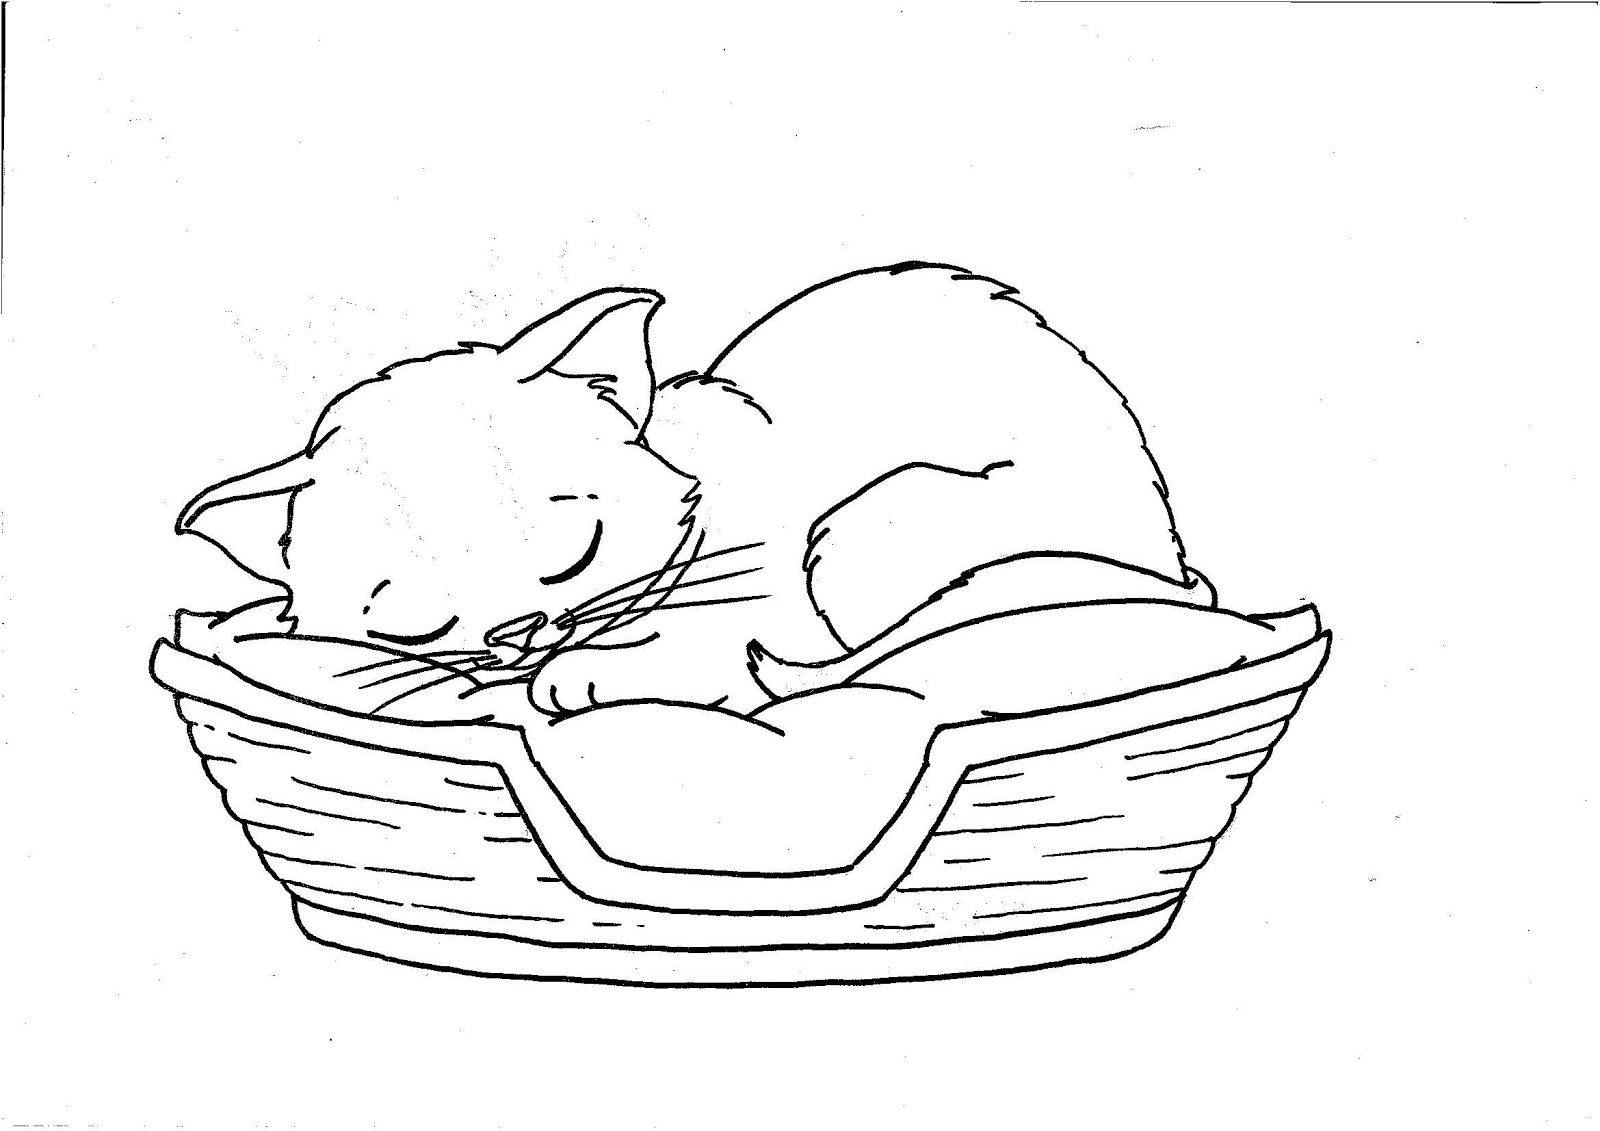 cat coloring pages free printable - kitten coloring pages printable